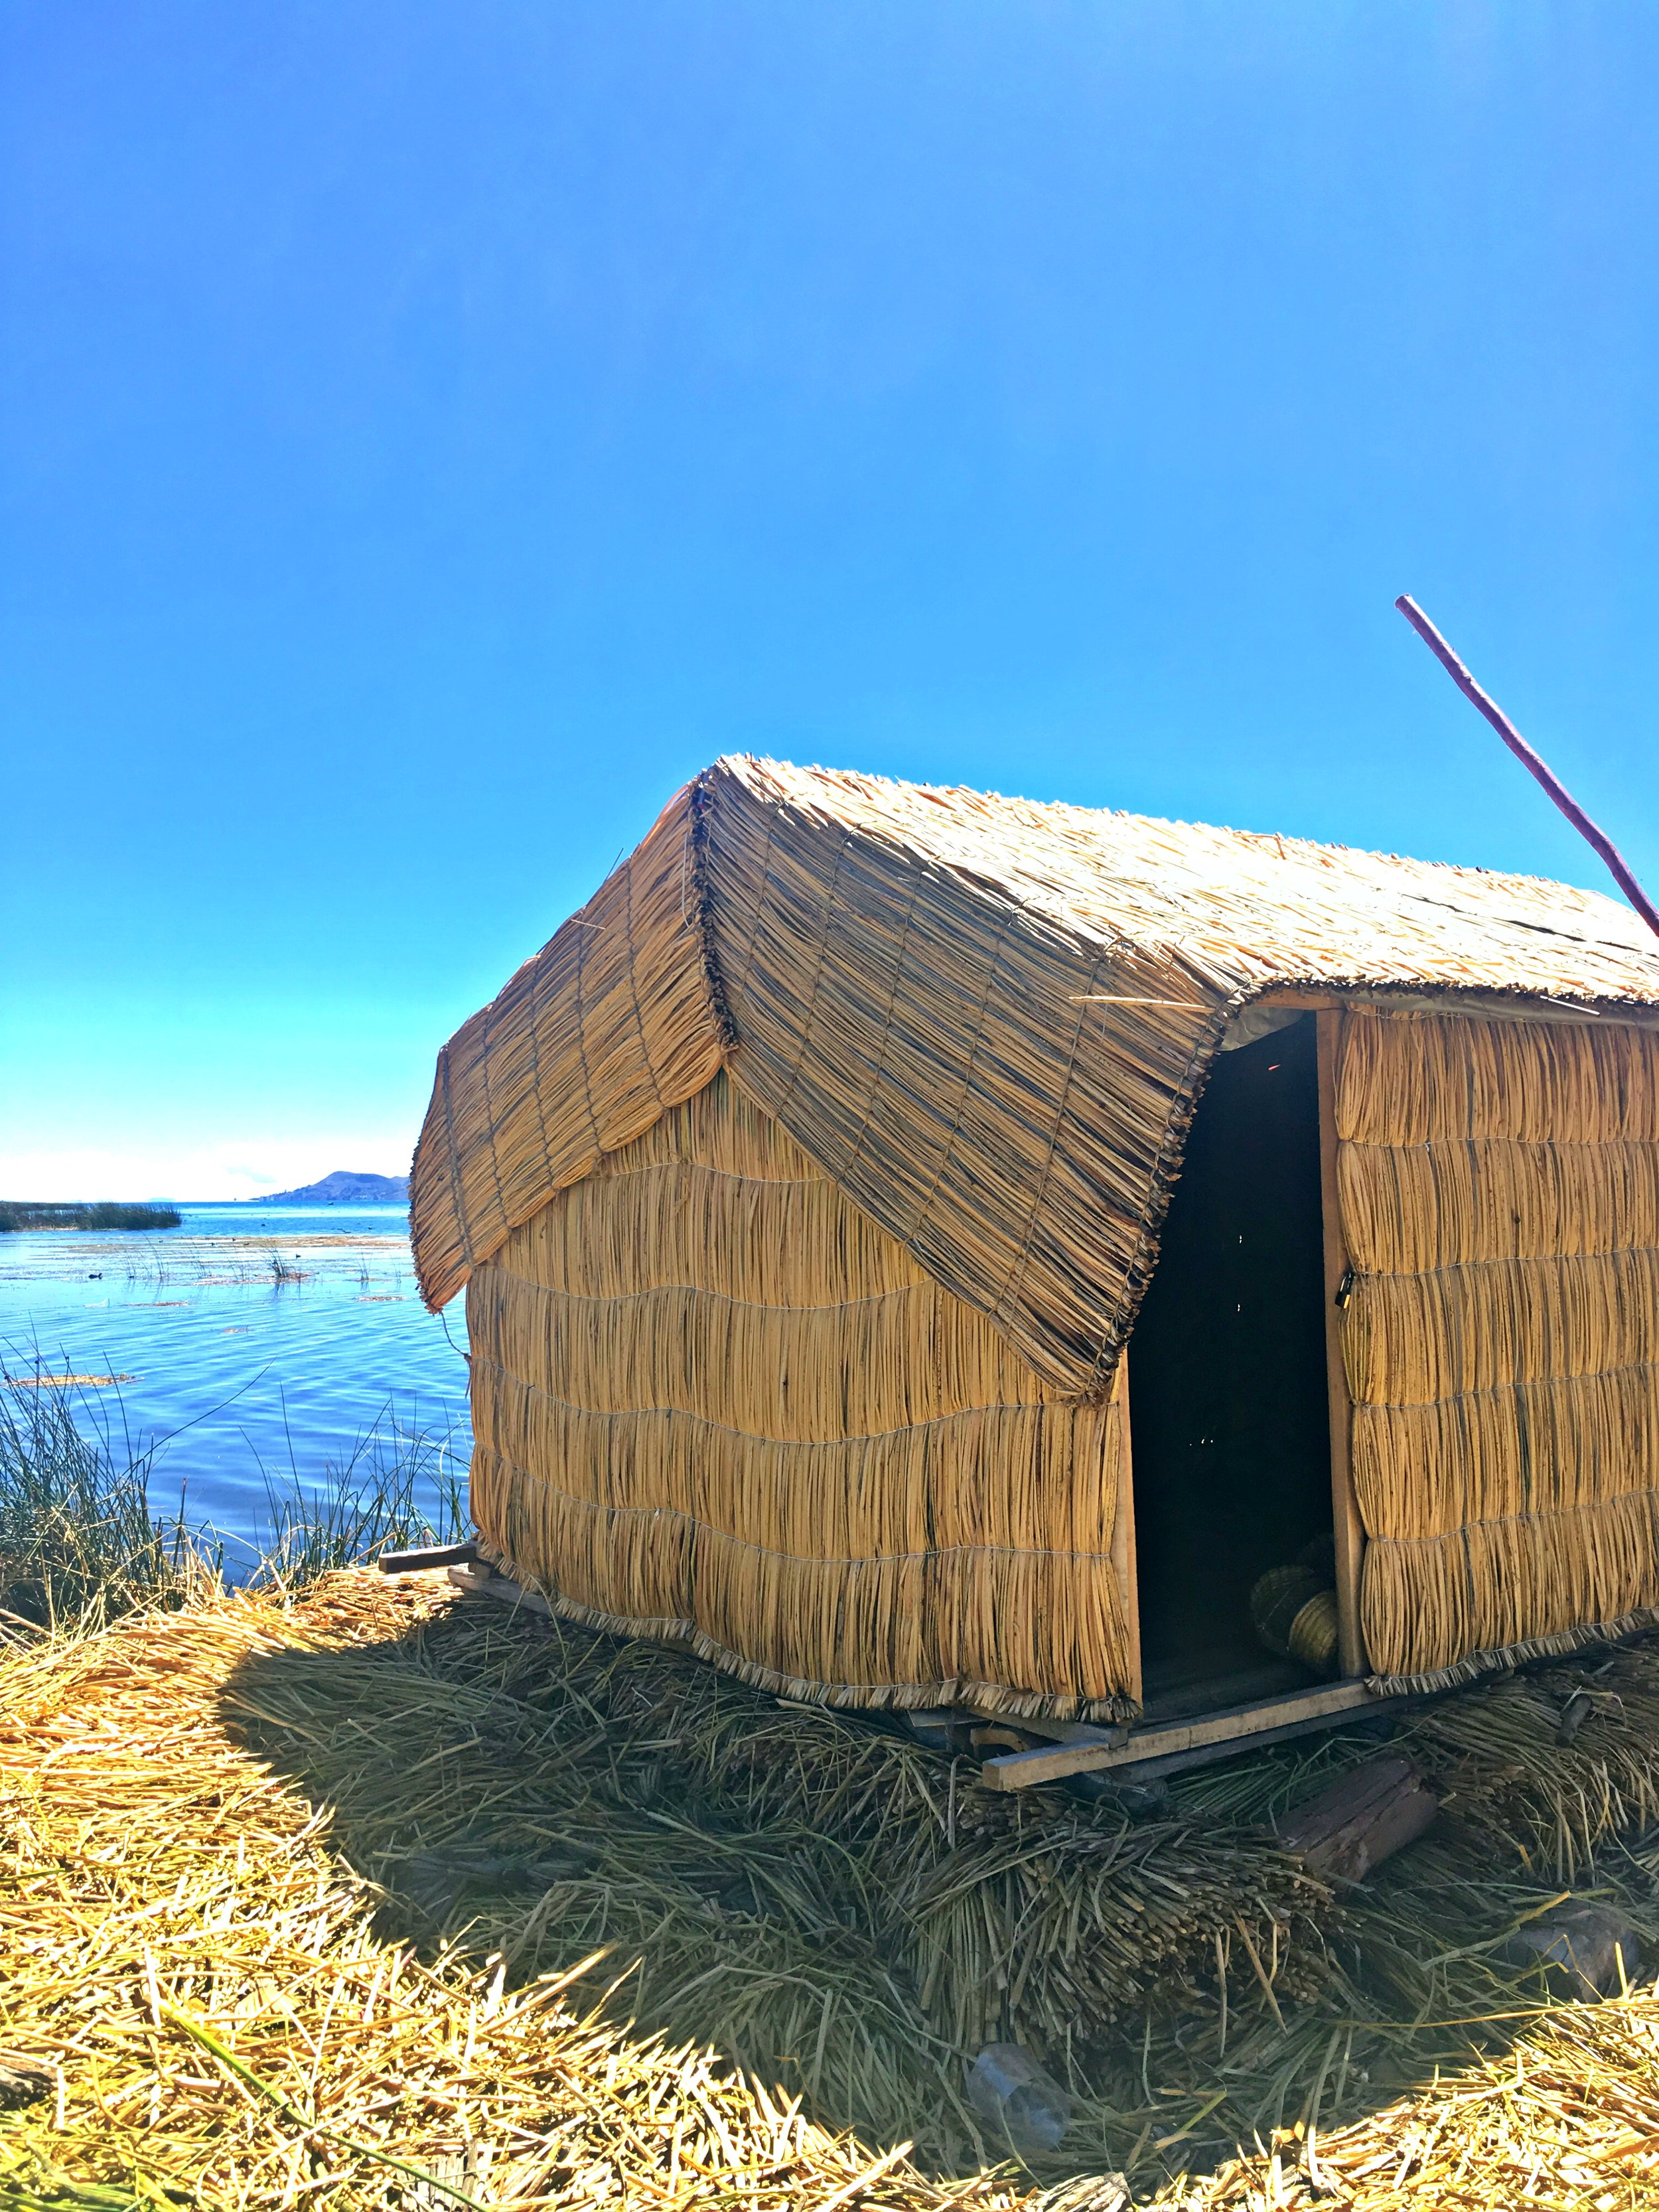 Reed hut on one of the Uros floating islands